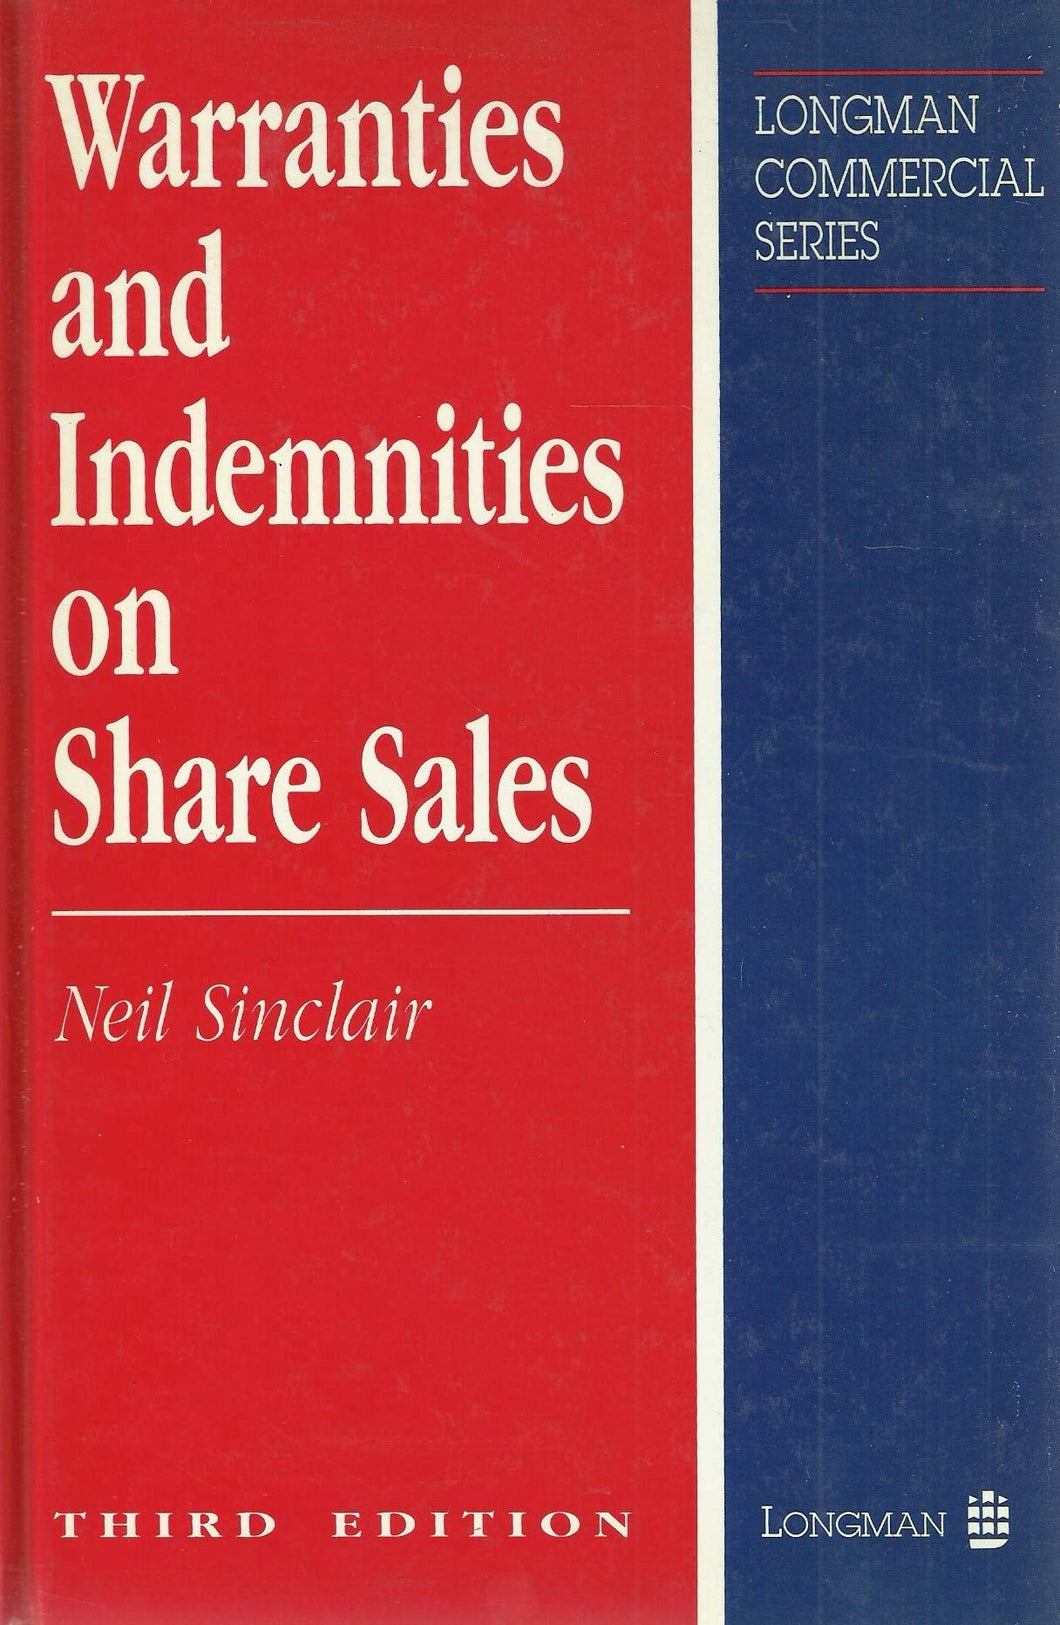 Warranties and Indemnities on Share Sales (Commercial)